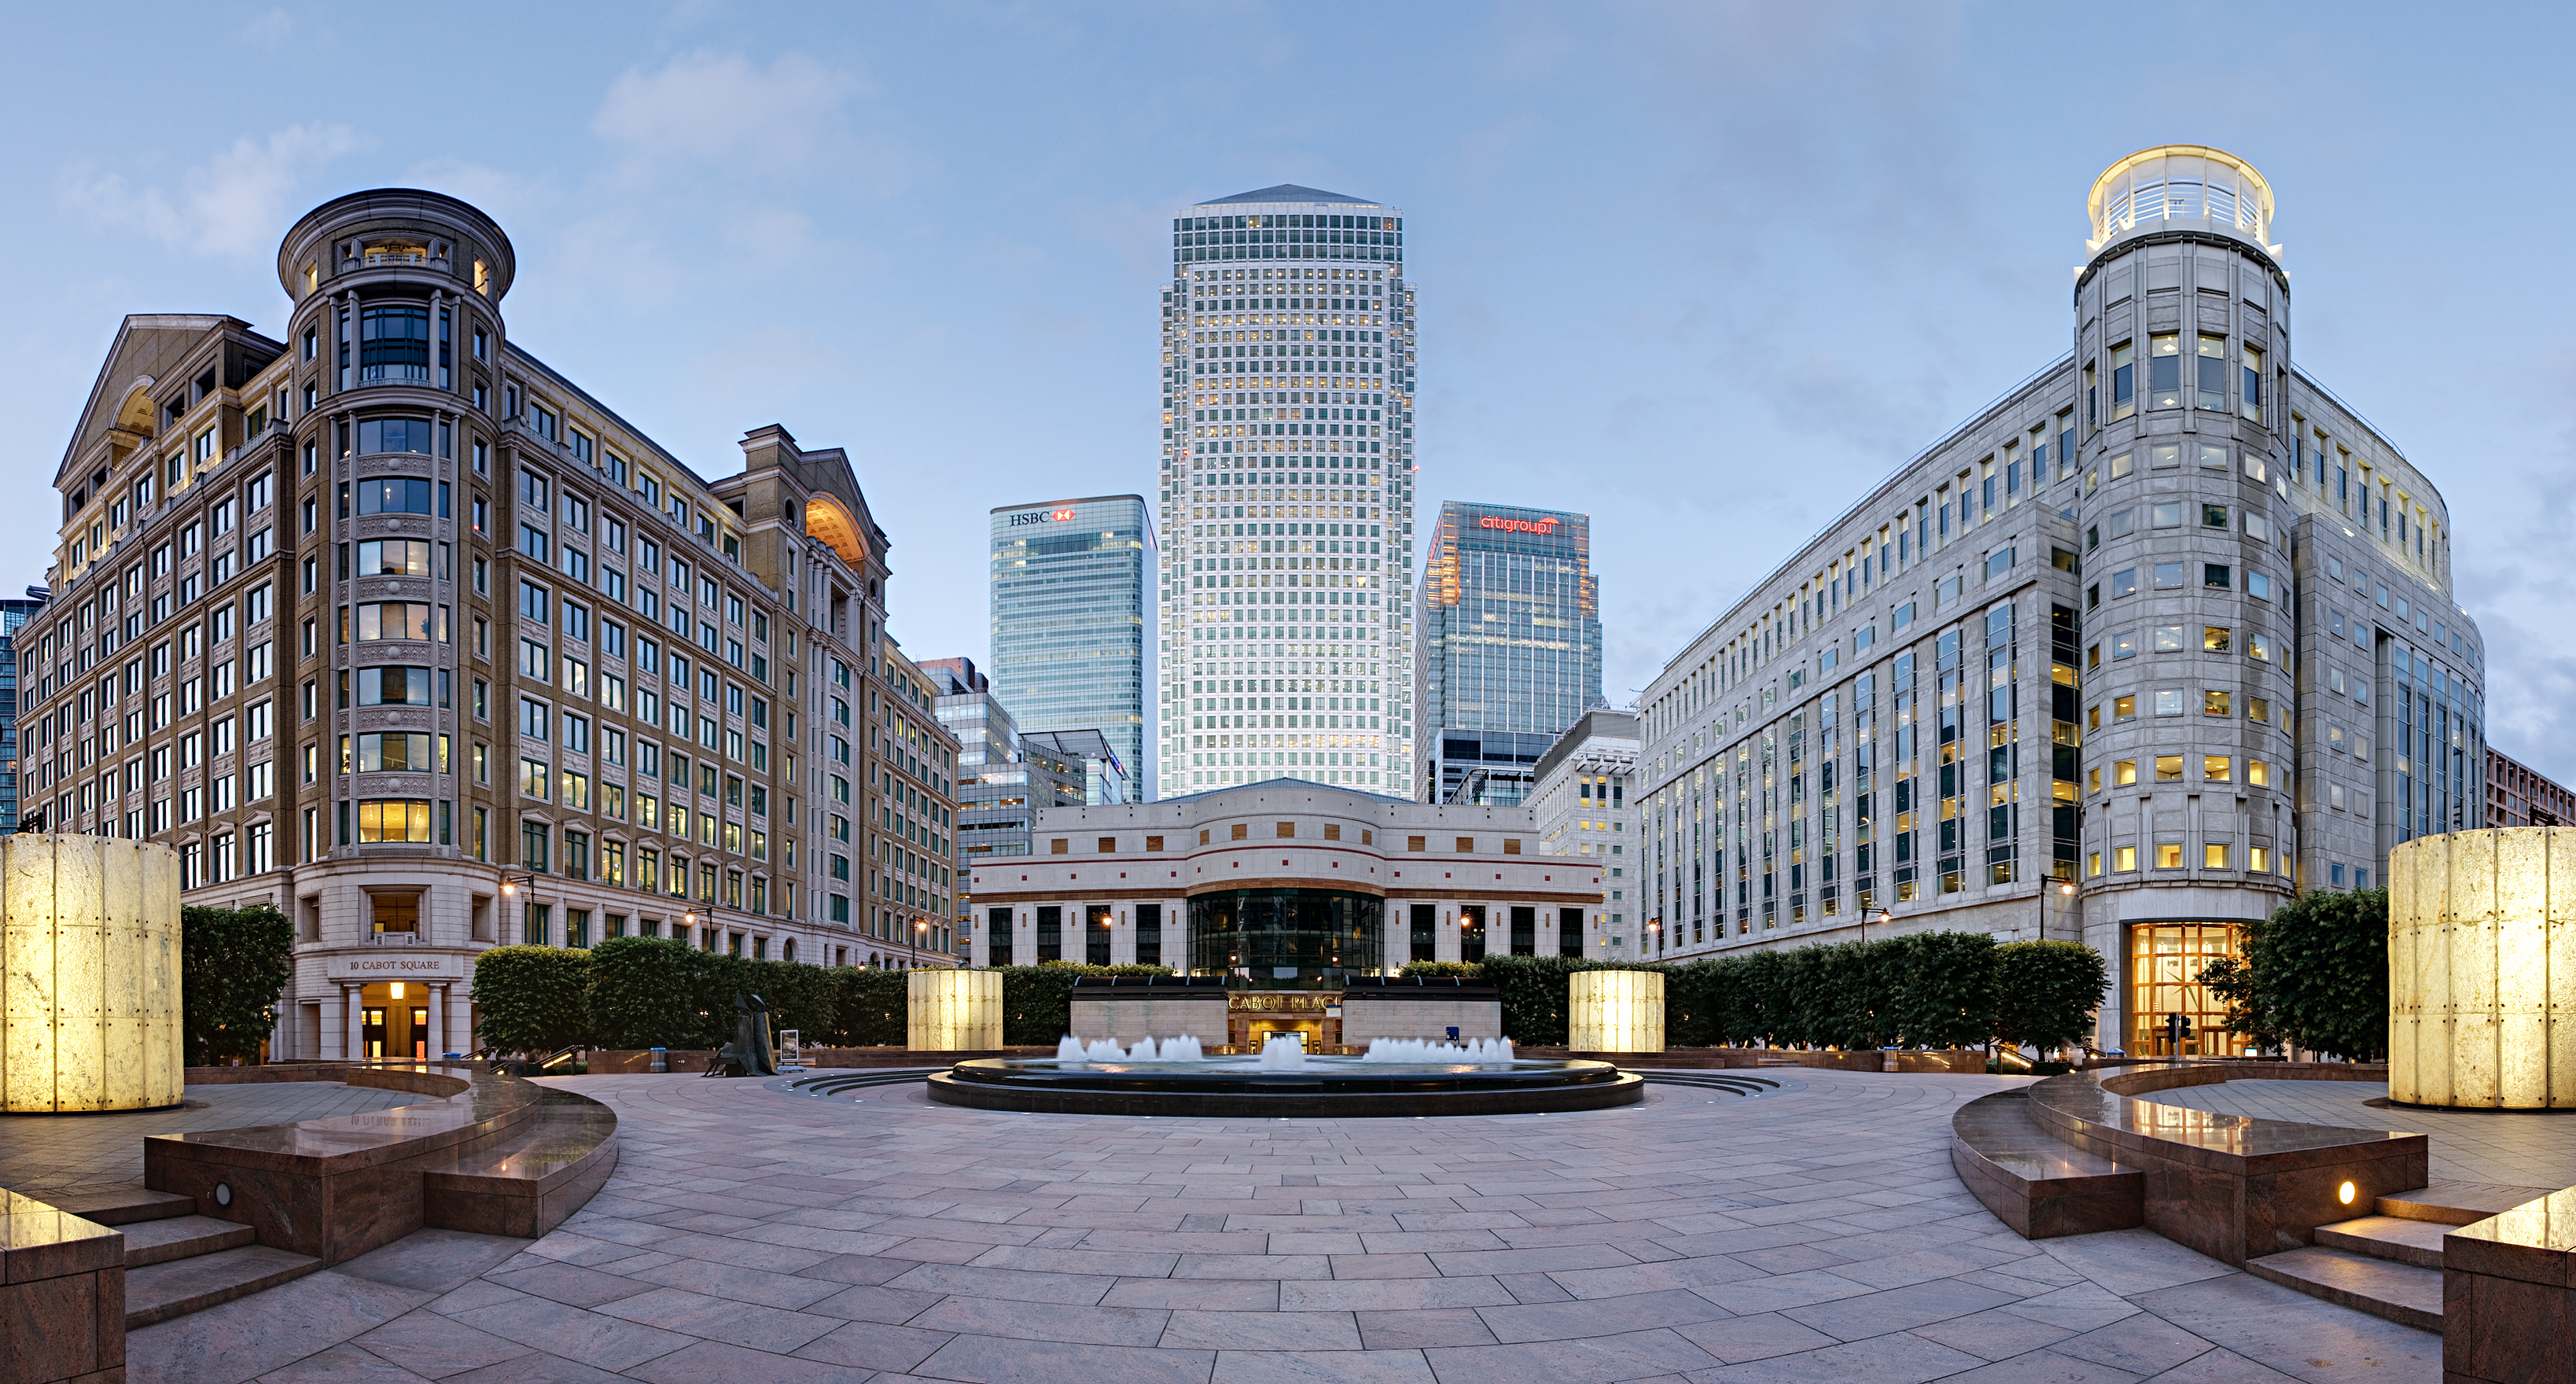 Cabot_Square,_Canary_Wharf_-_June_2008